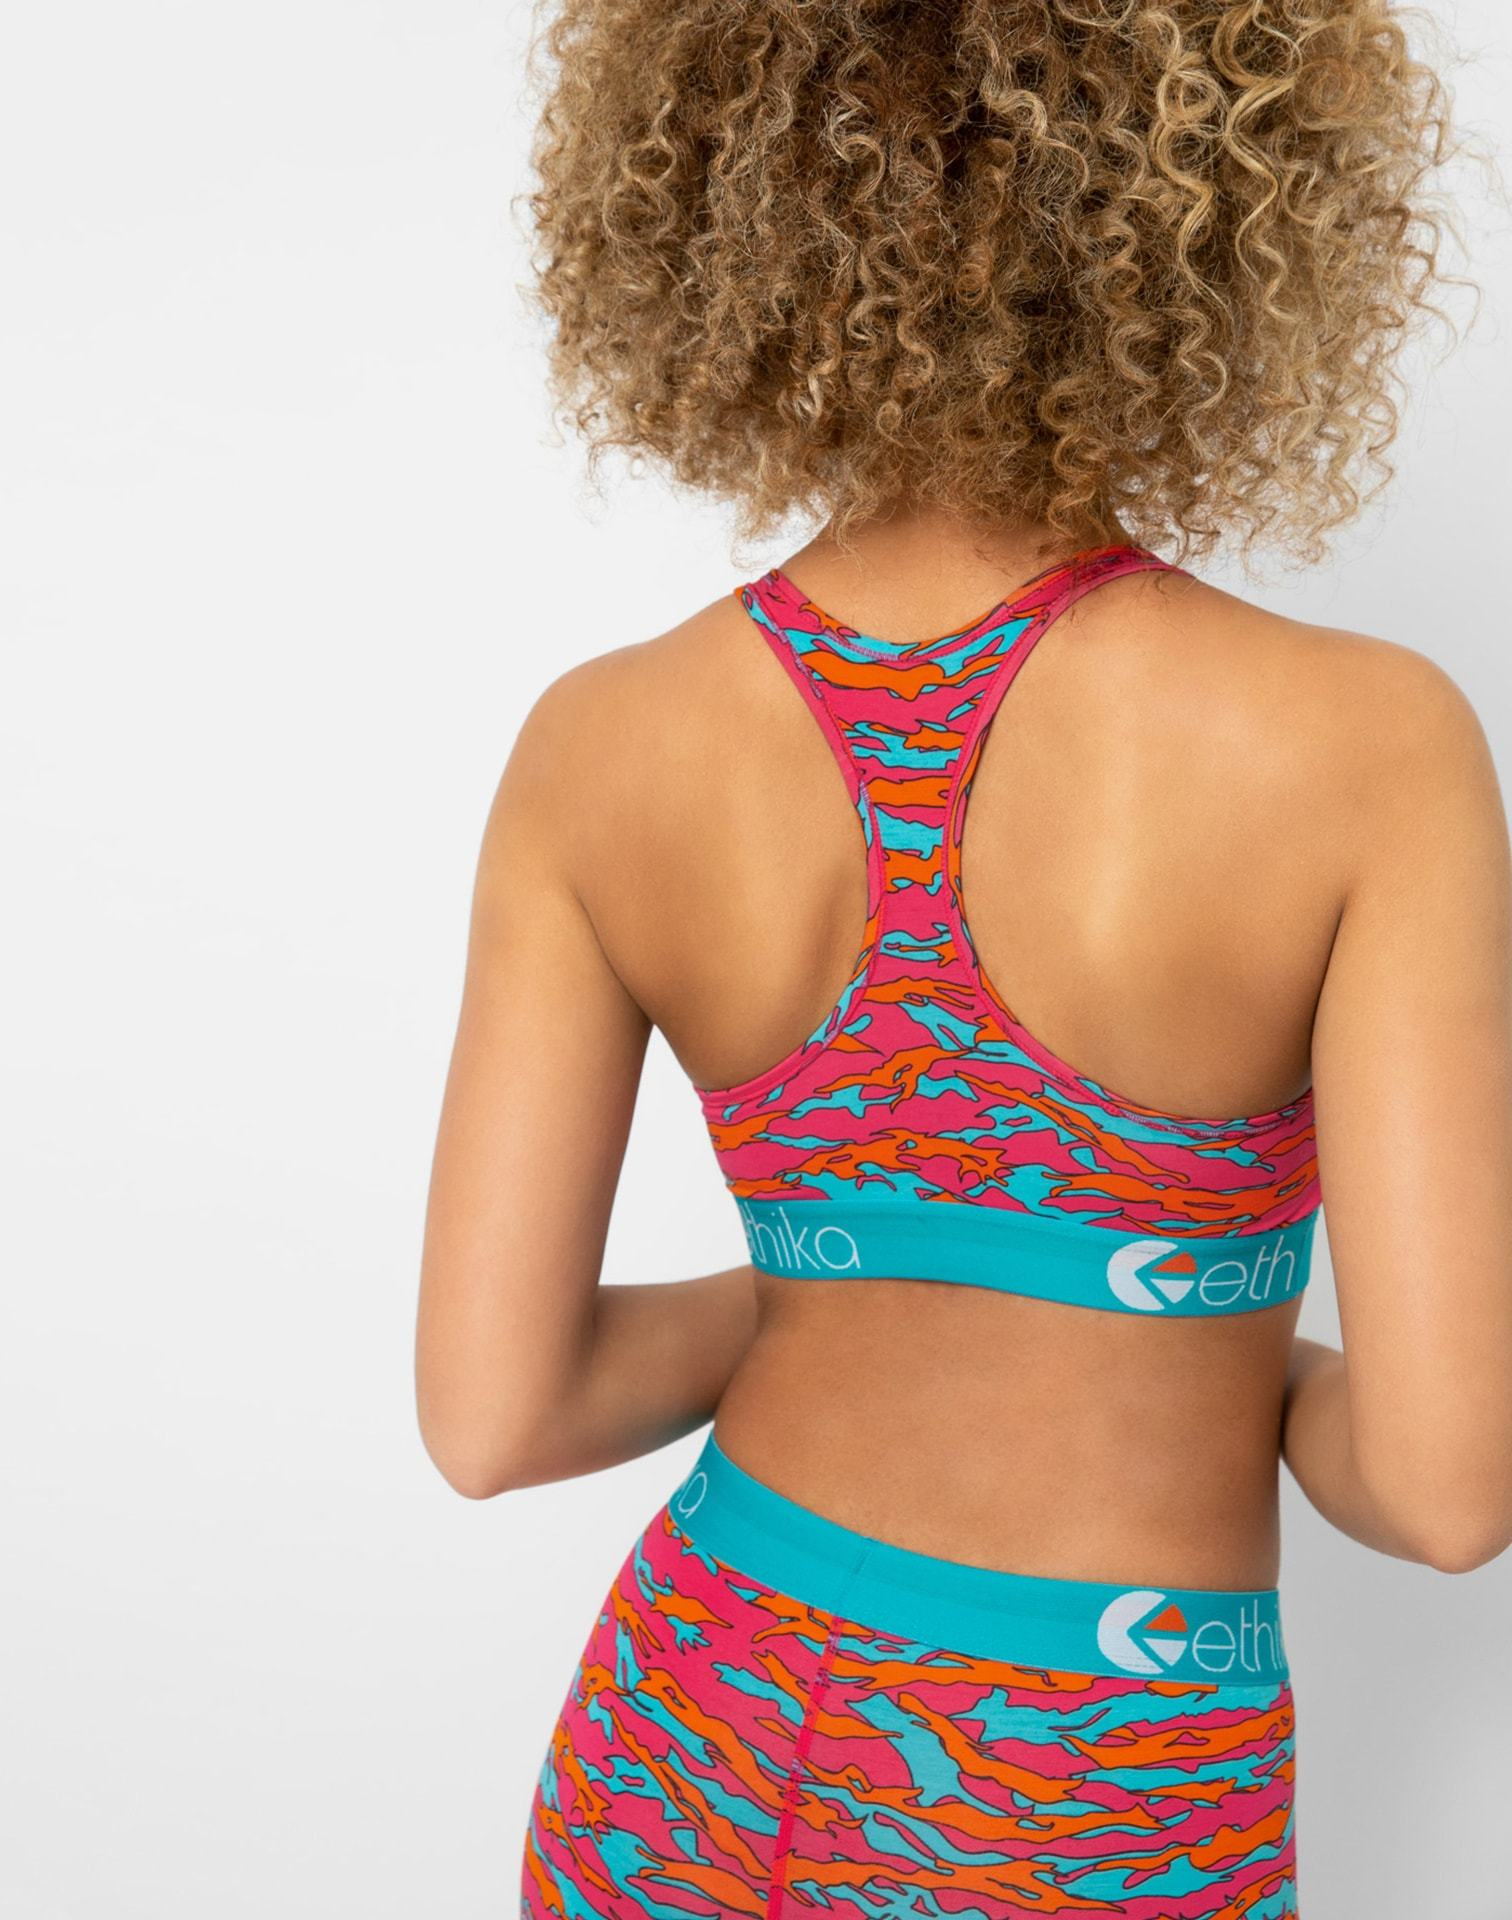 Ethika Women's Tiger Pop Sports Bra